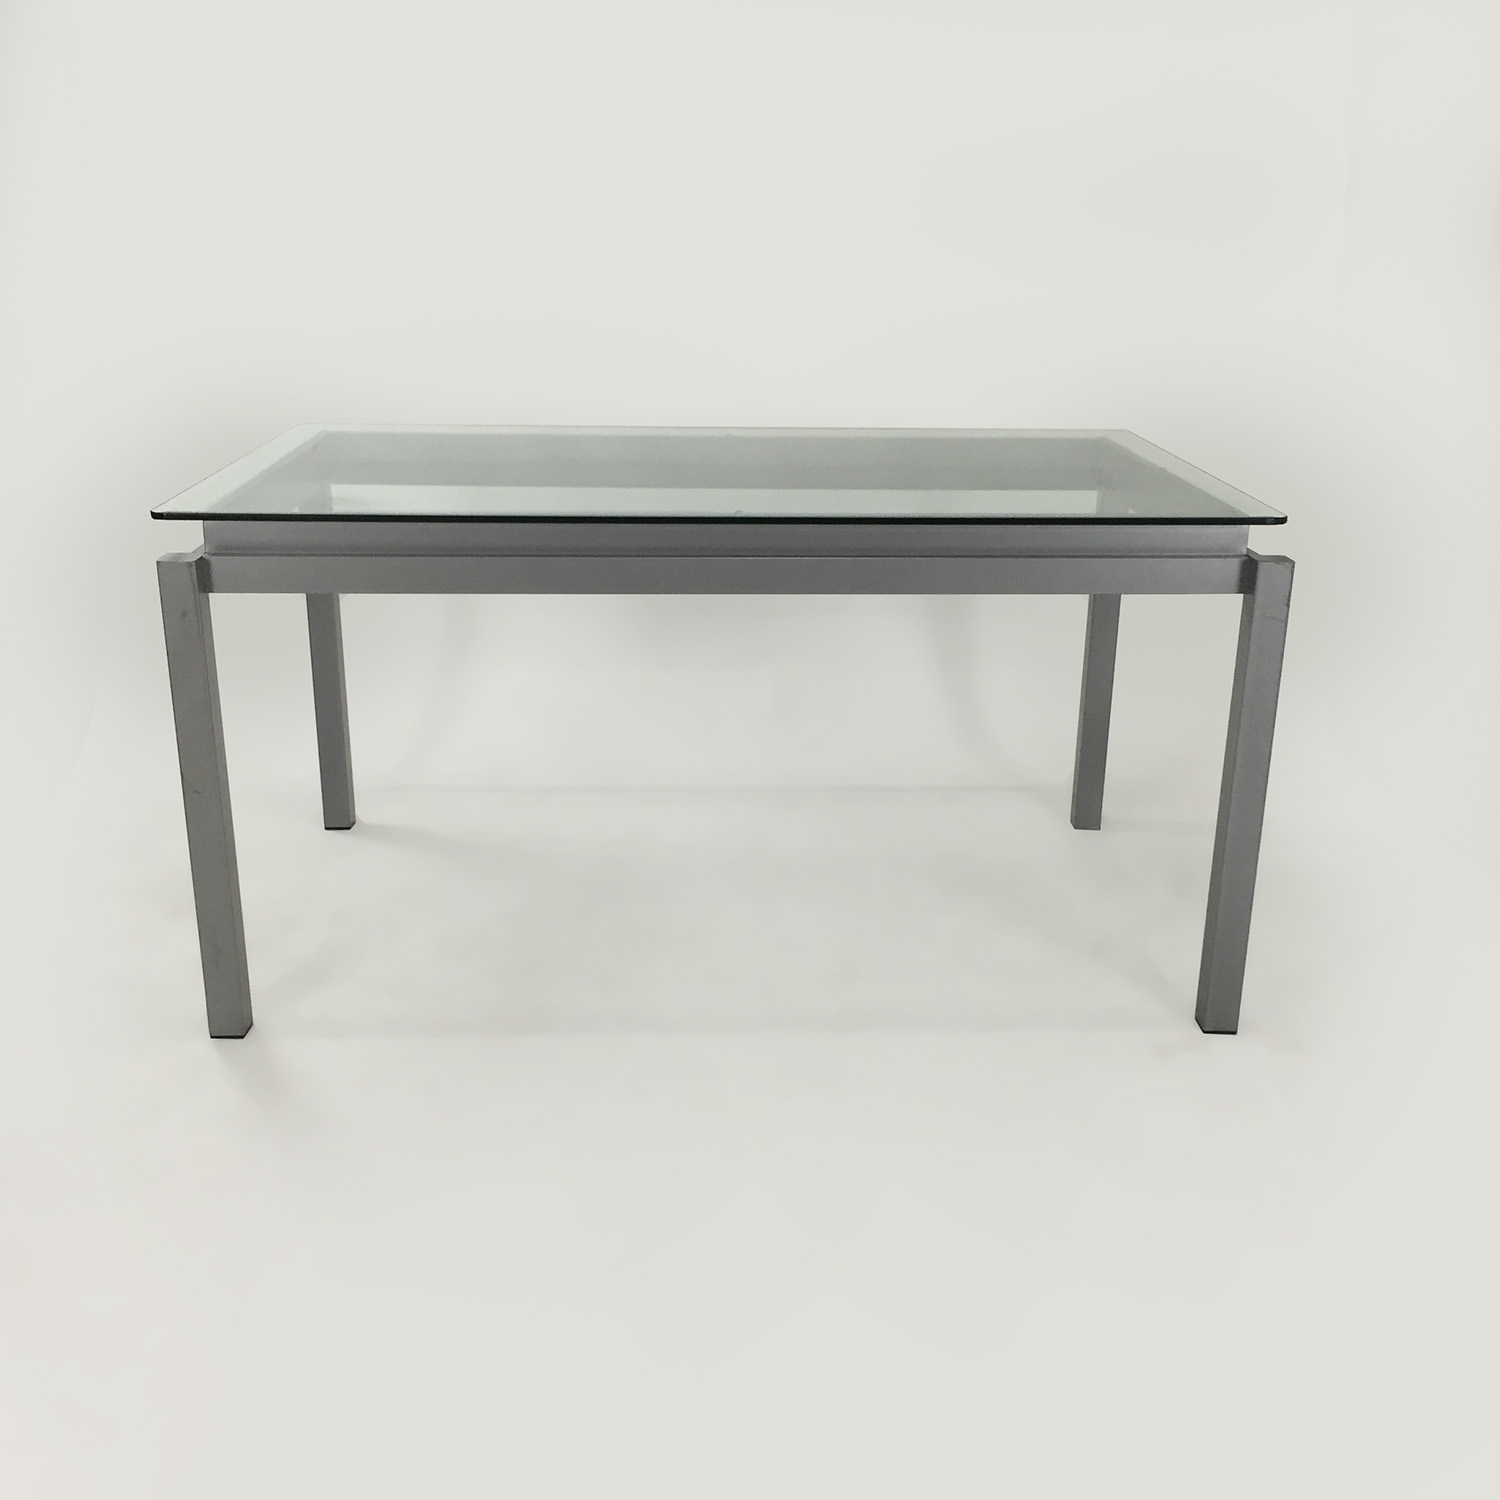 shop Unknown Brand Glass Dining Table online